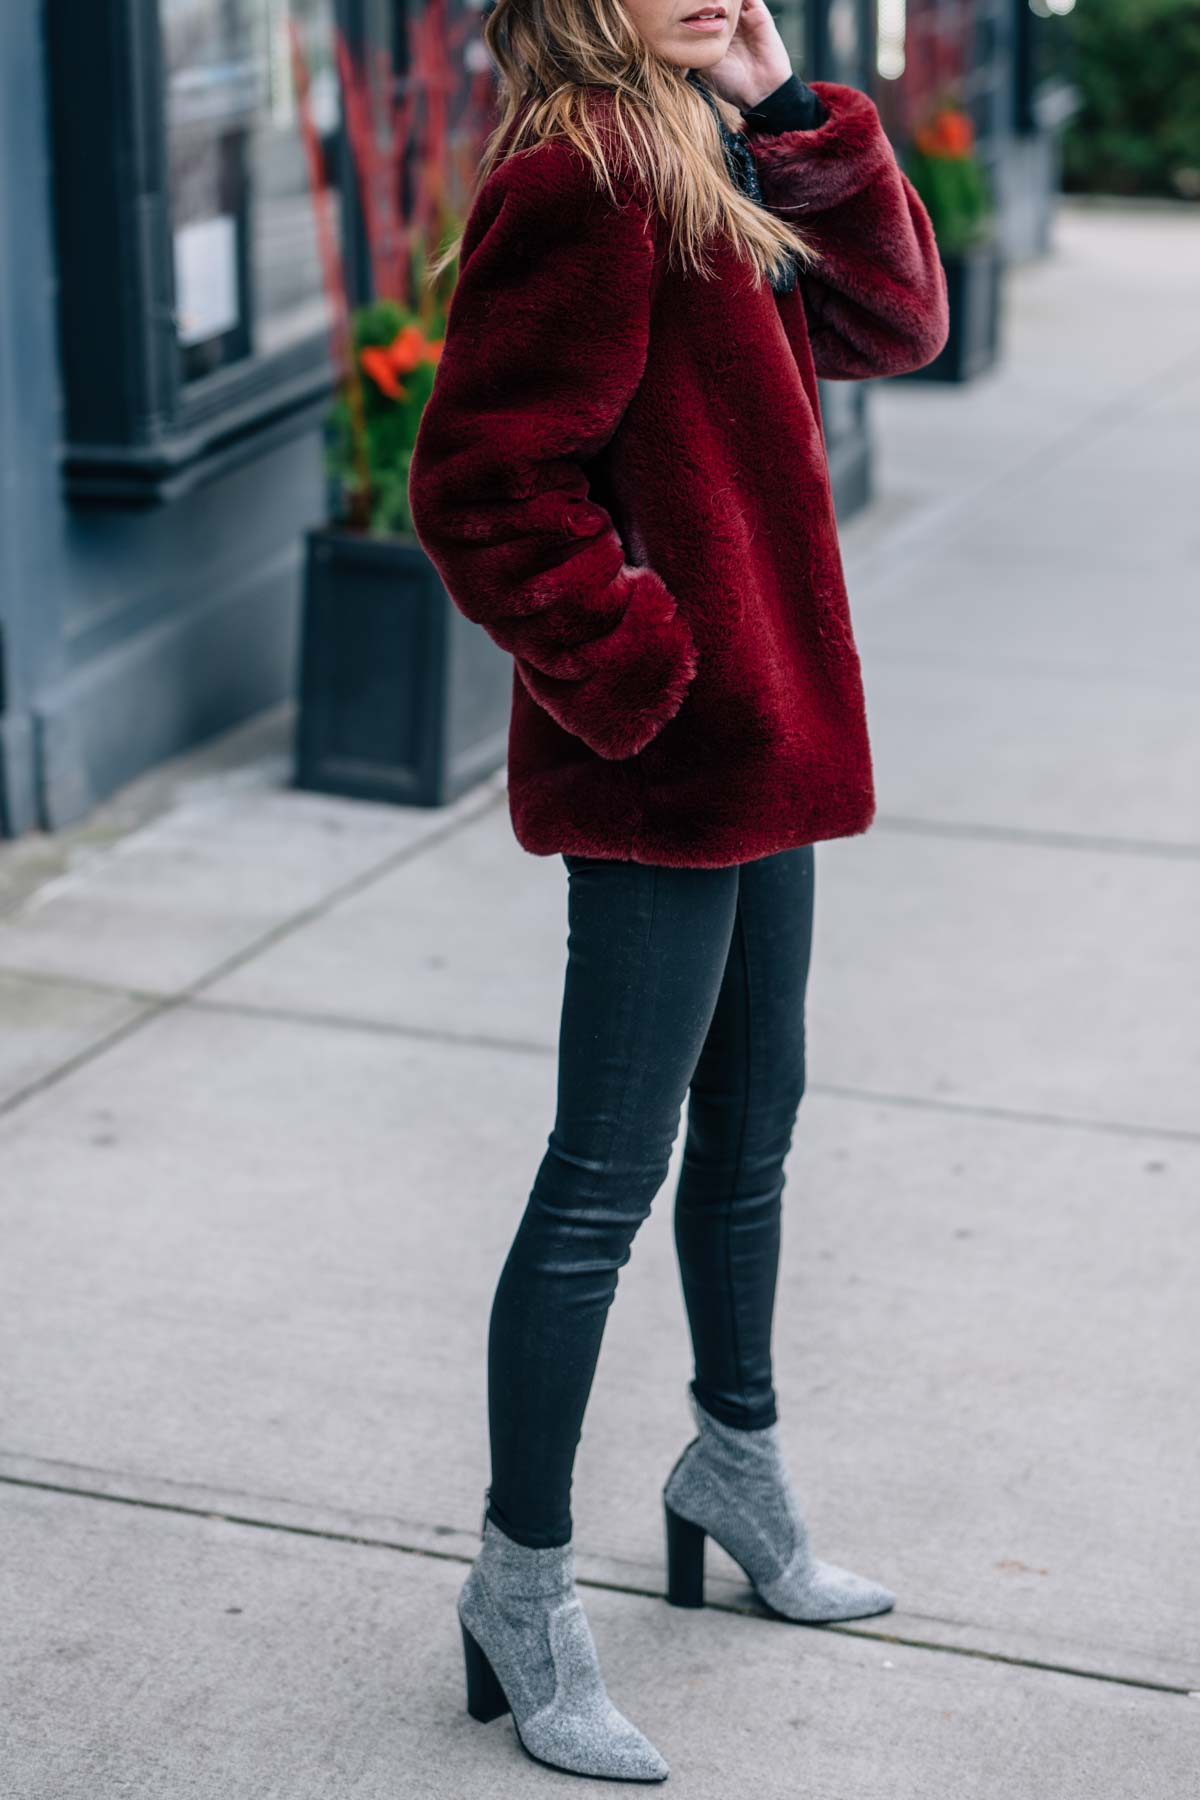 Jess Ann Kirby shares her holiday style this season in a burgundy Moon River faux fur jacket and Dolce Vita stretch sparkle booties